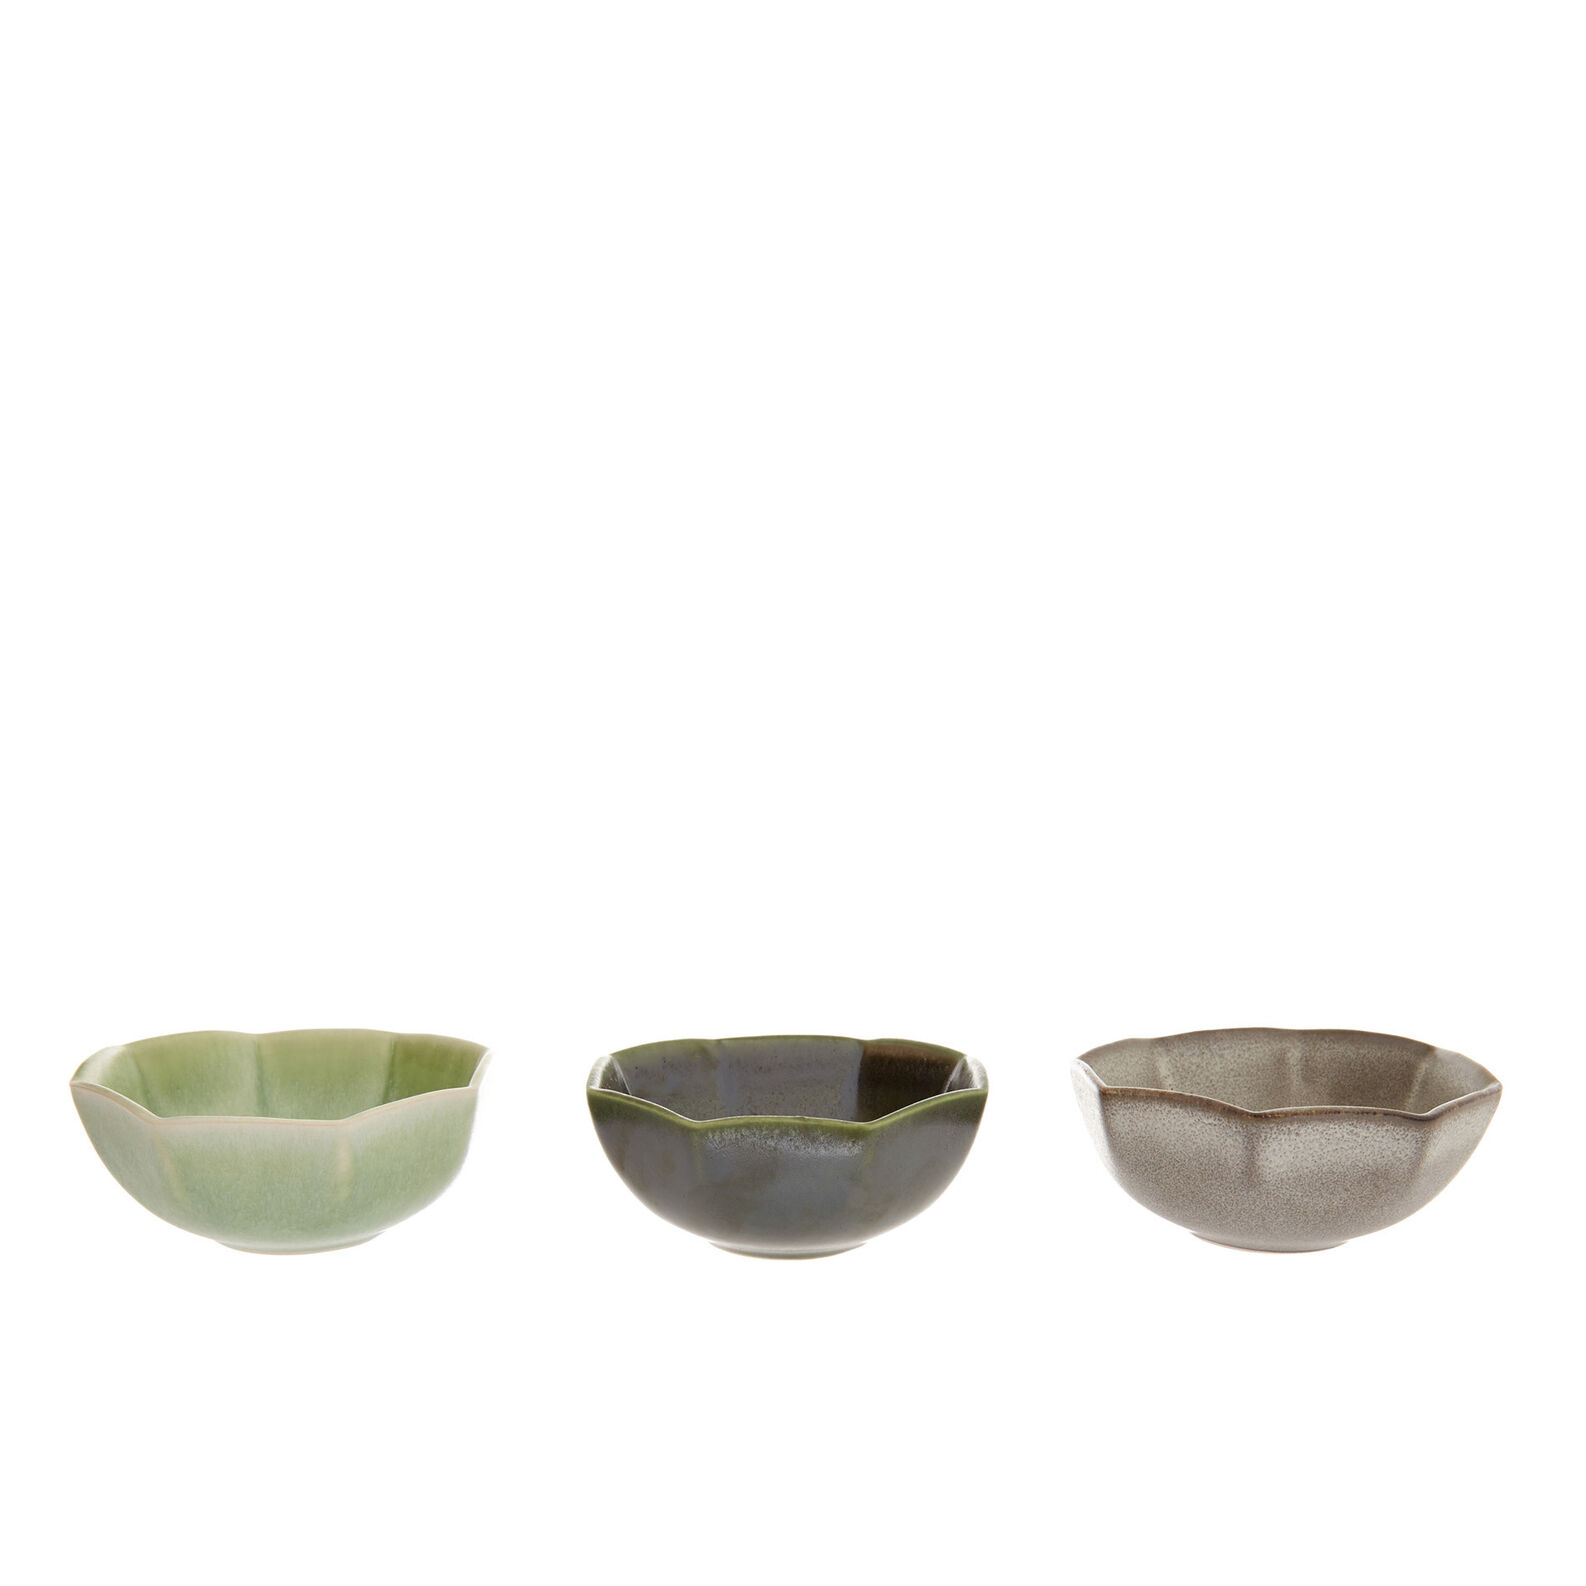 Small Japanese-style ceramic bowl